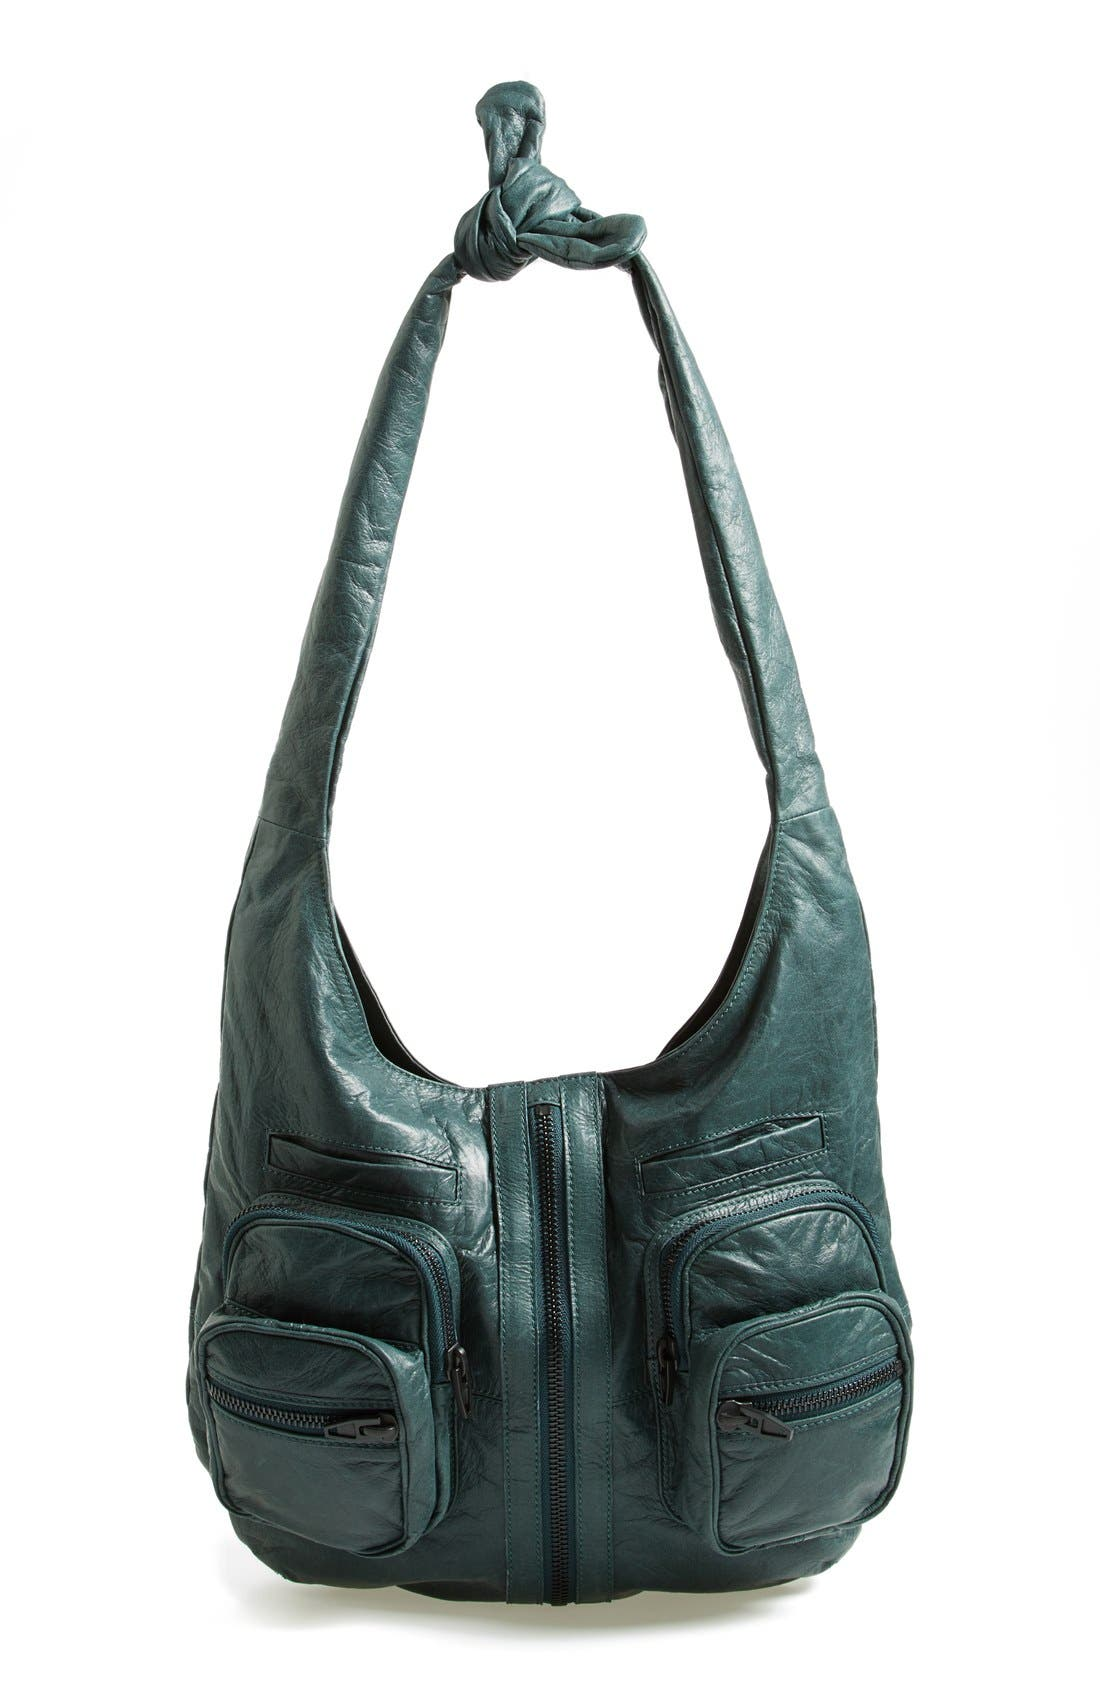 Alternate Image 1 Selected - Alexander Wang 'Donna' Leather Hobo